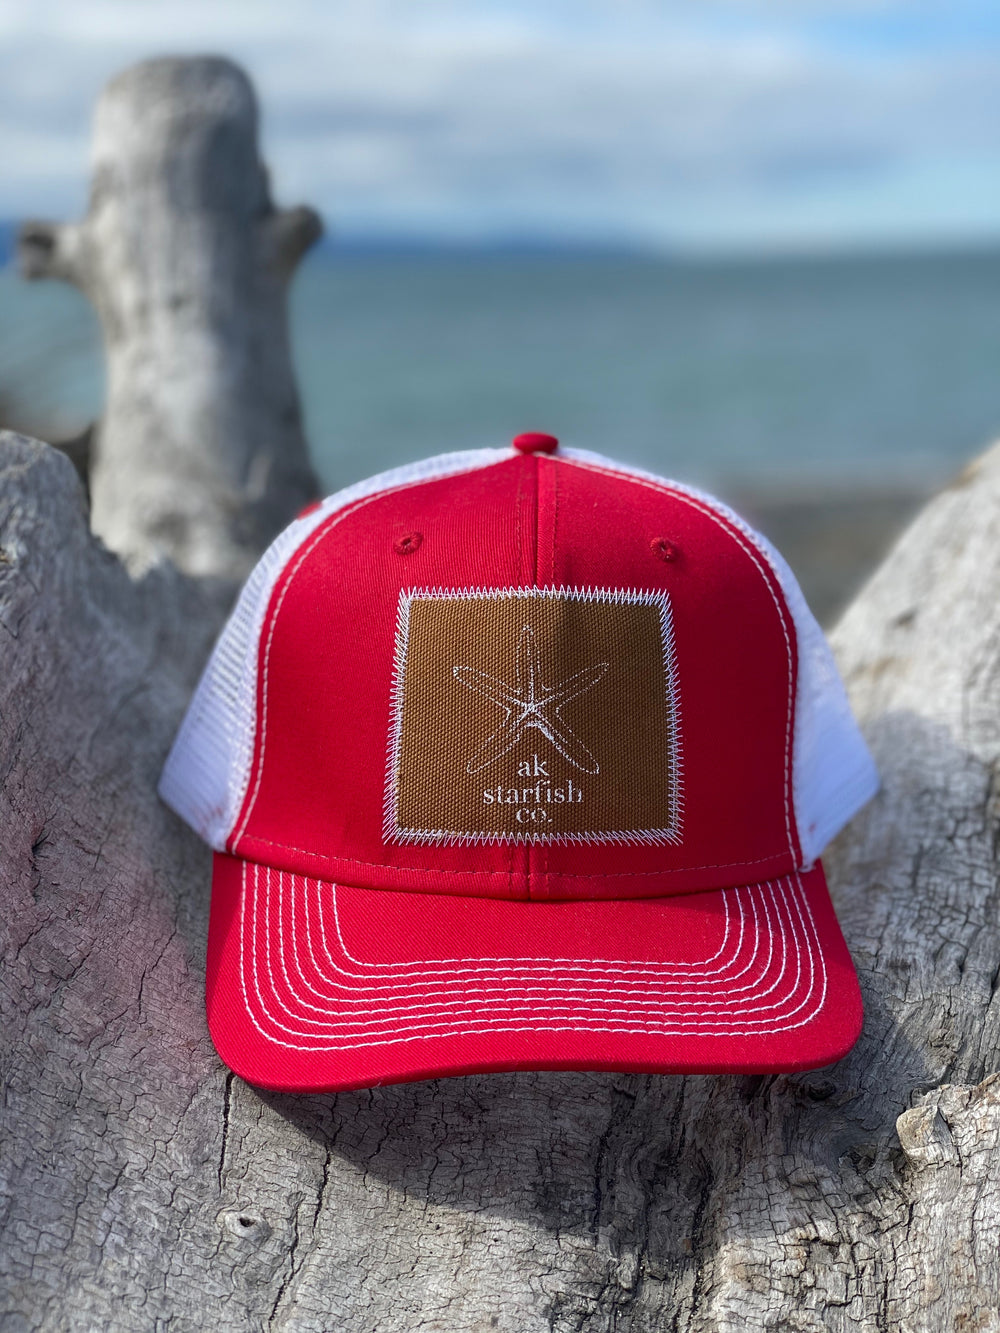 Beach Red AK Starfish Co. Patch Hat $35.00